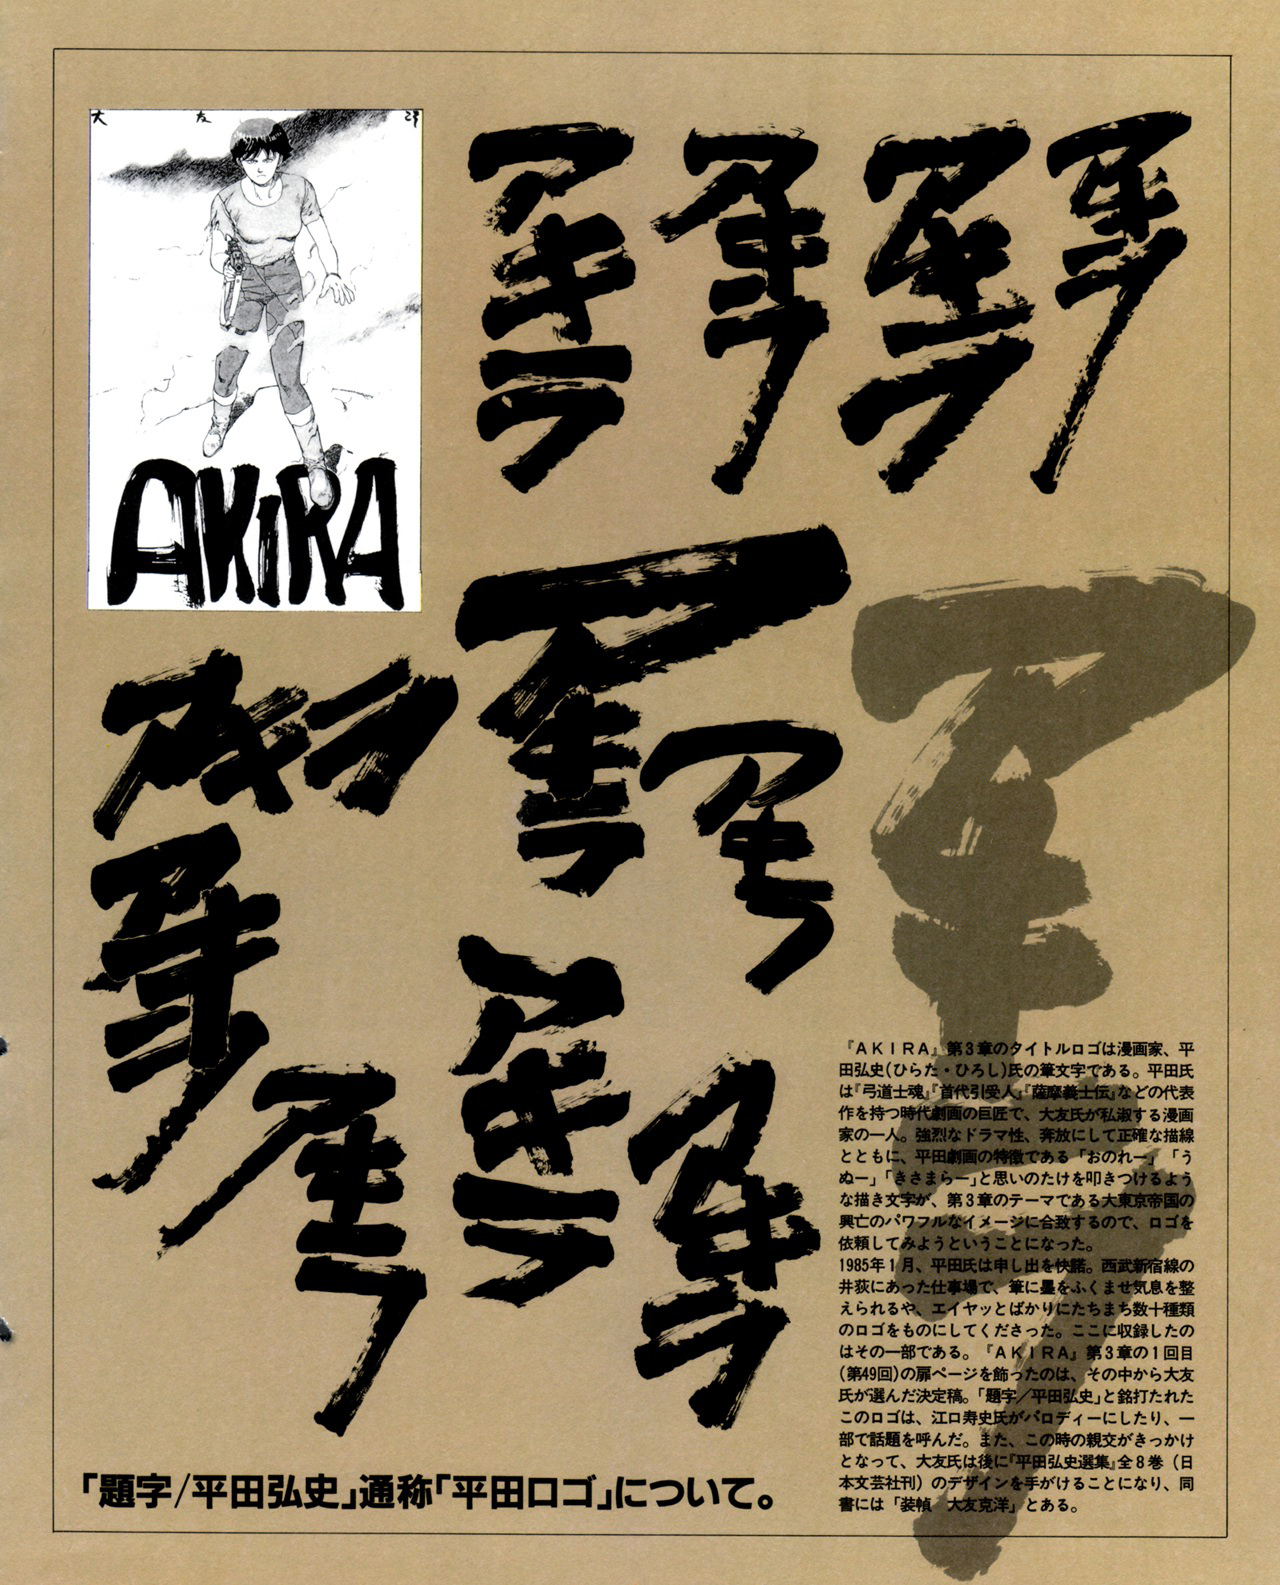 Japanese Calligraphy Font Generator Online Akira By Katsuhiro Otomo Fonts In Use